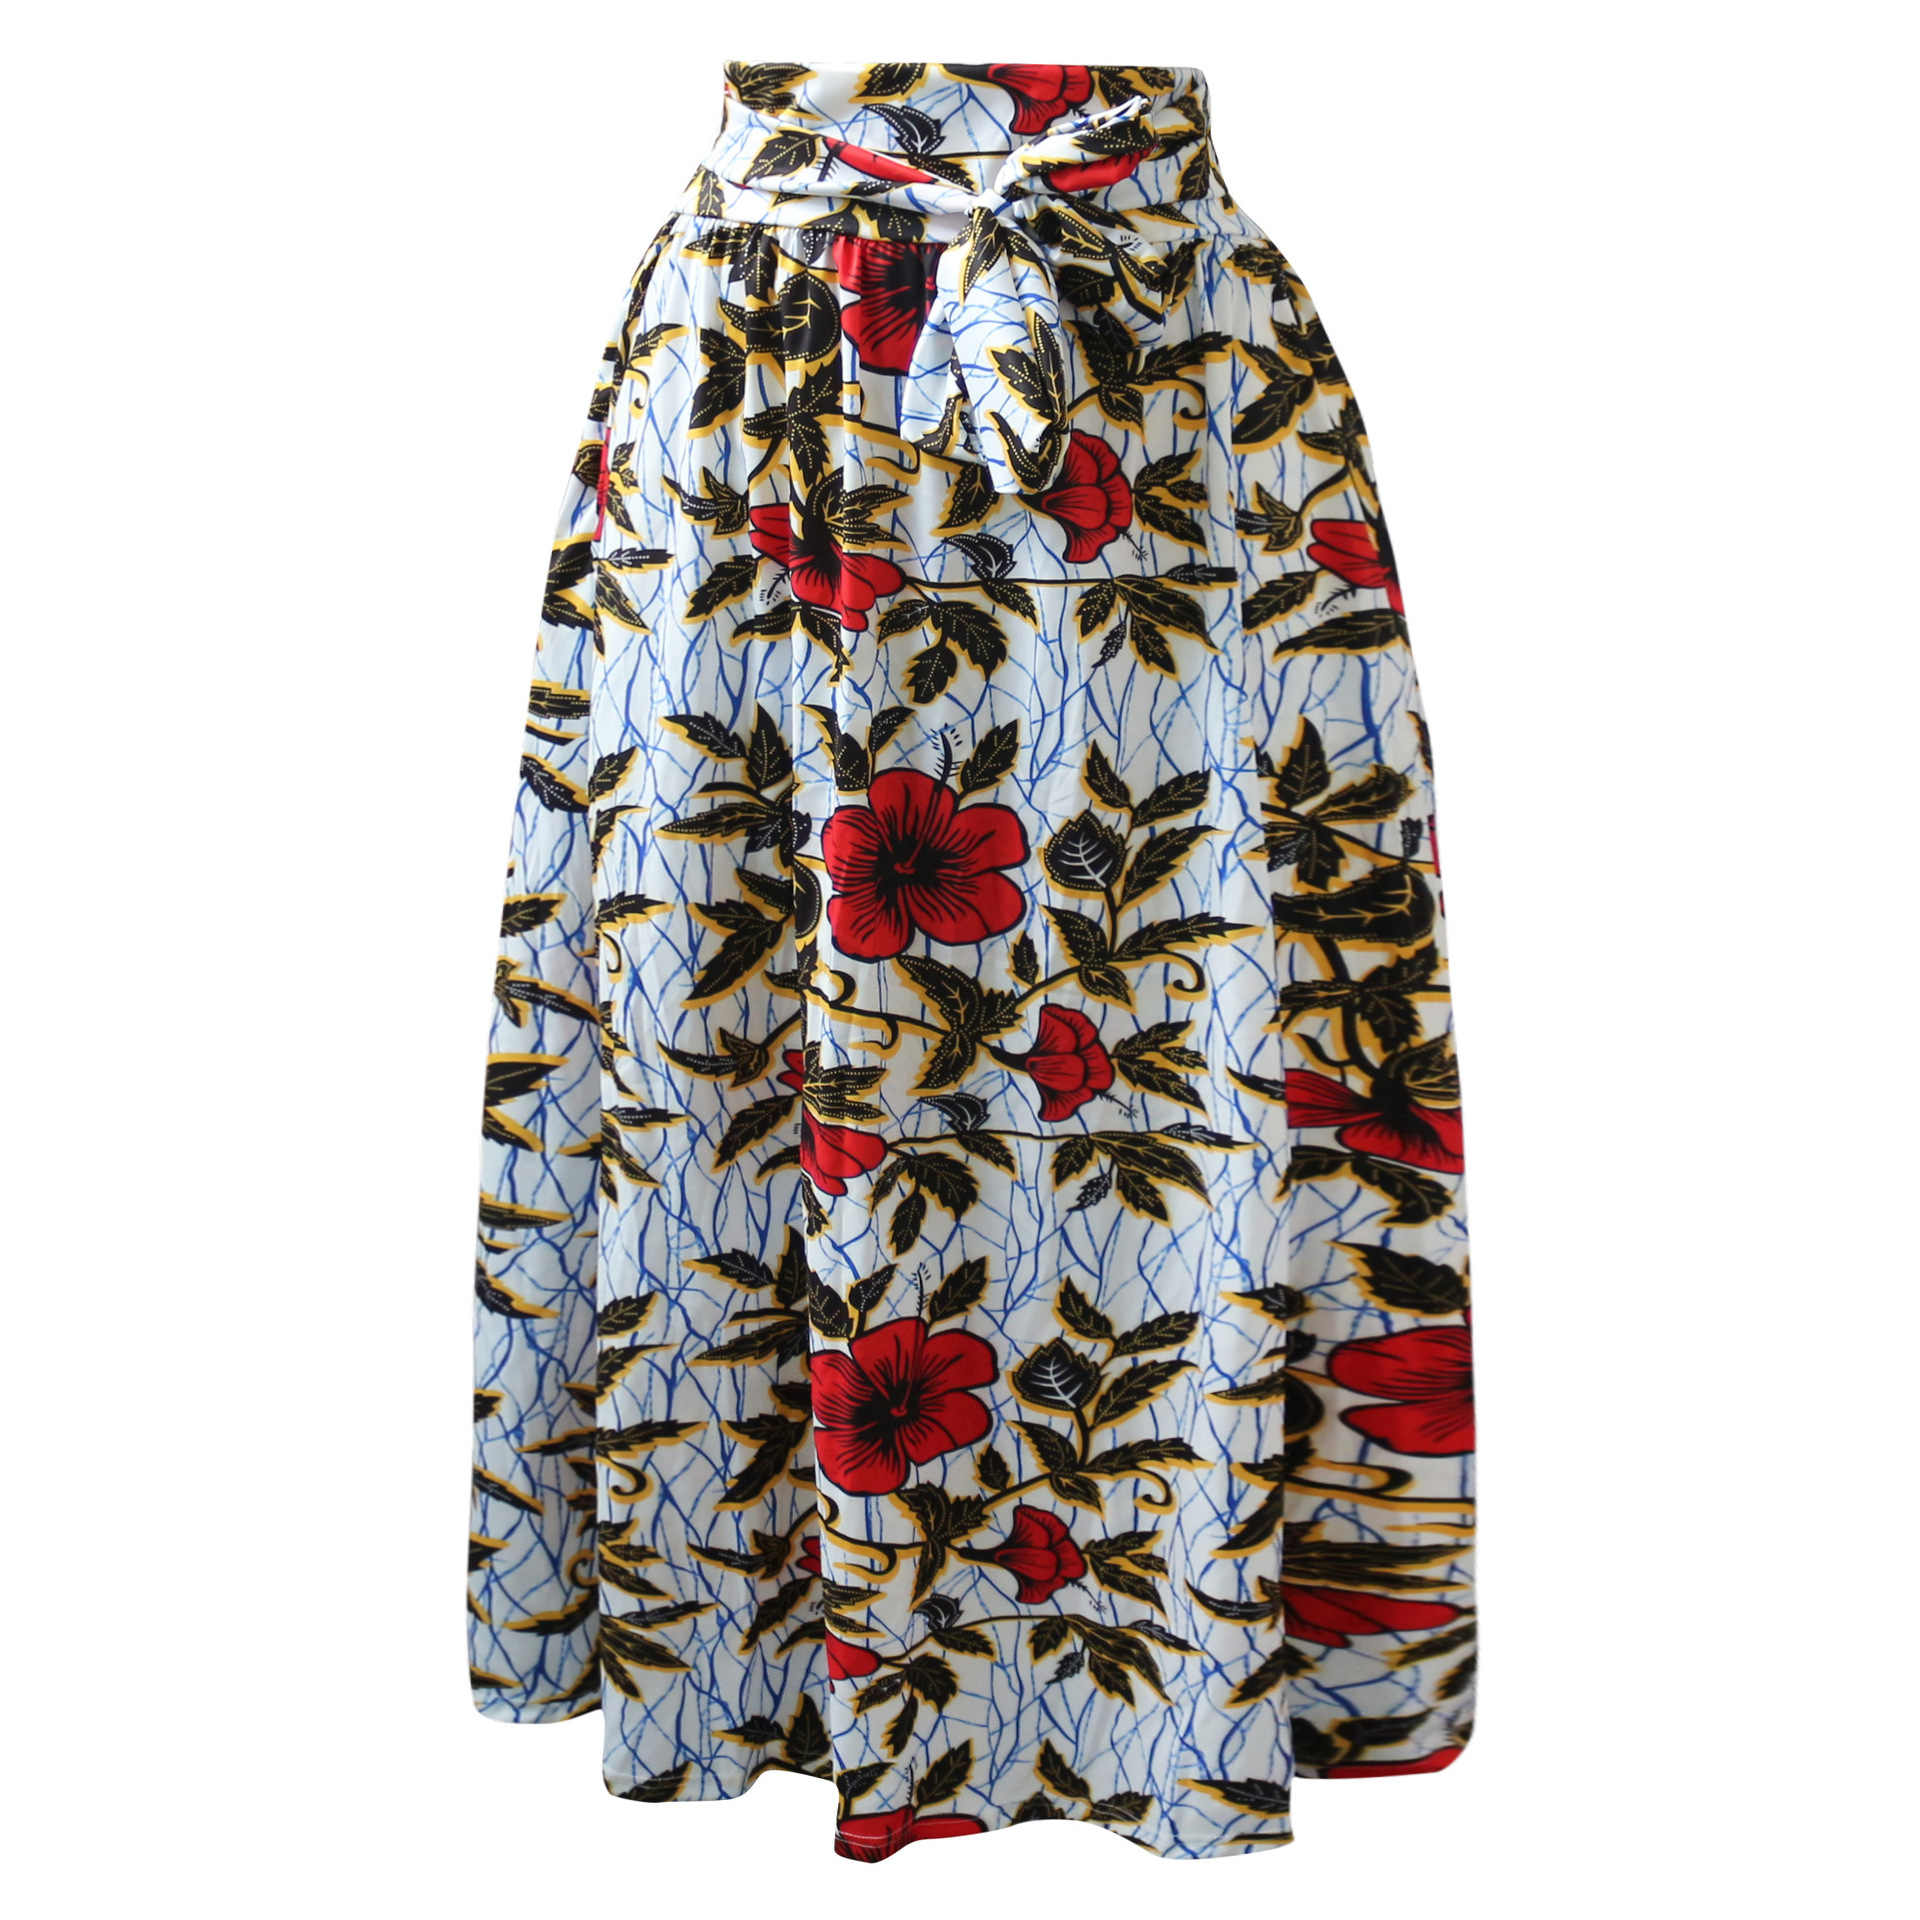 9382a17e46d ... Plus Size Africa Clothing 5XL Indonesia Ankara Indian African Pattern  Print Skirt For Women Fashion Bandage ...